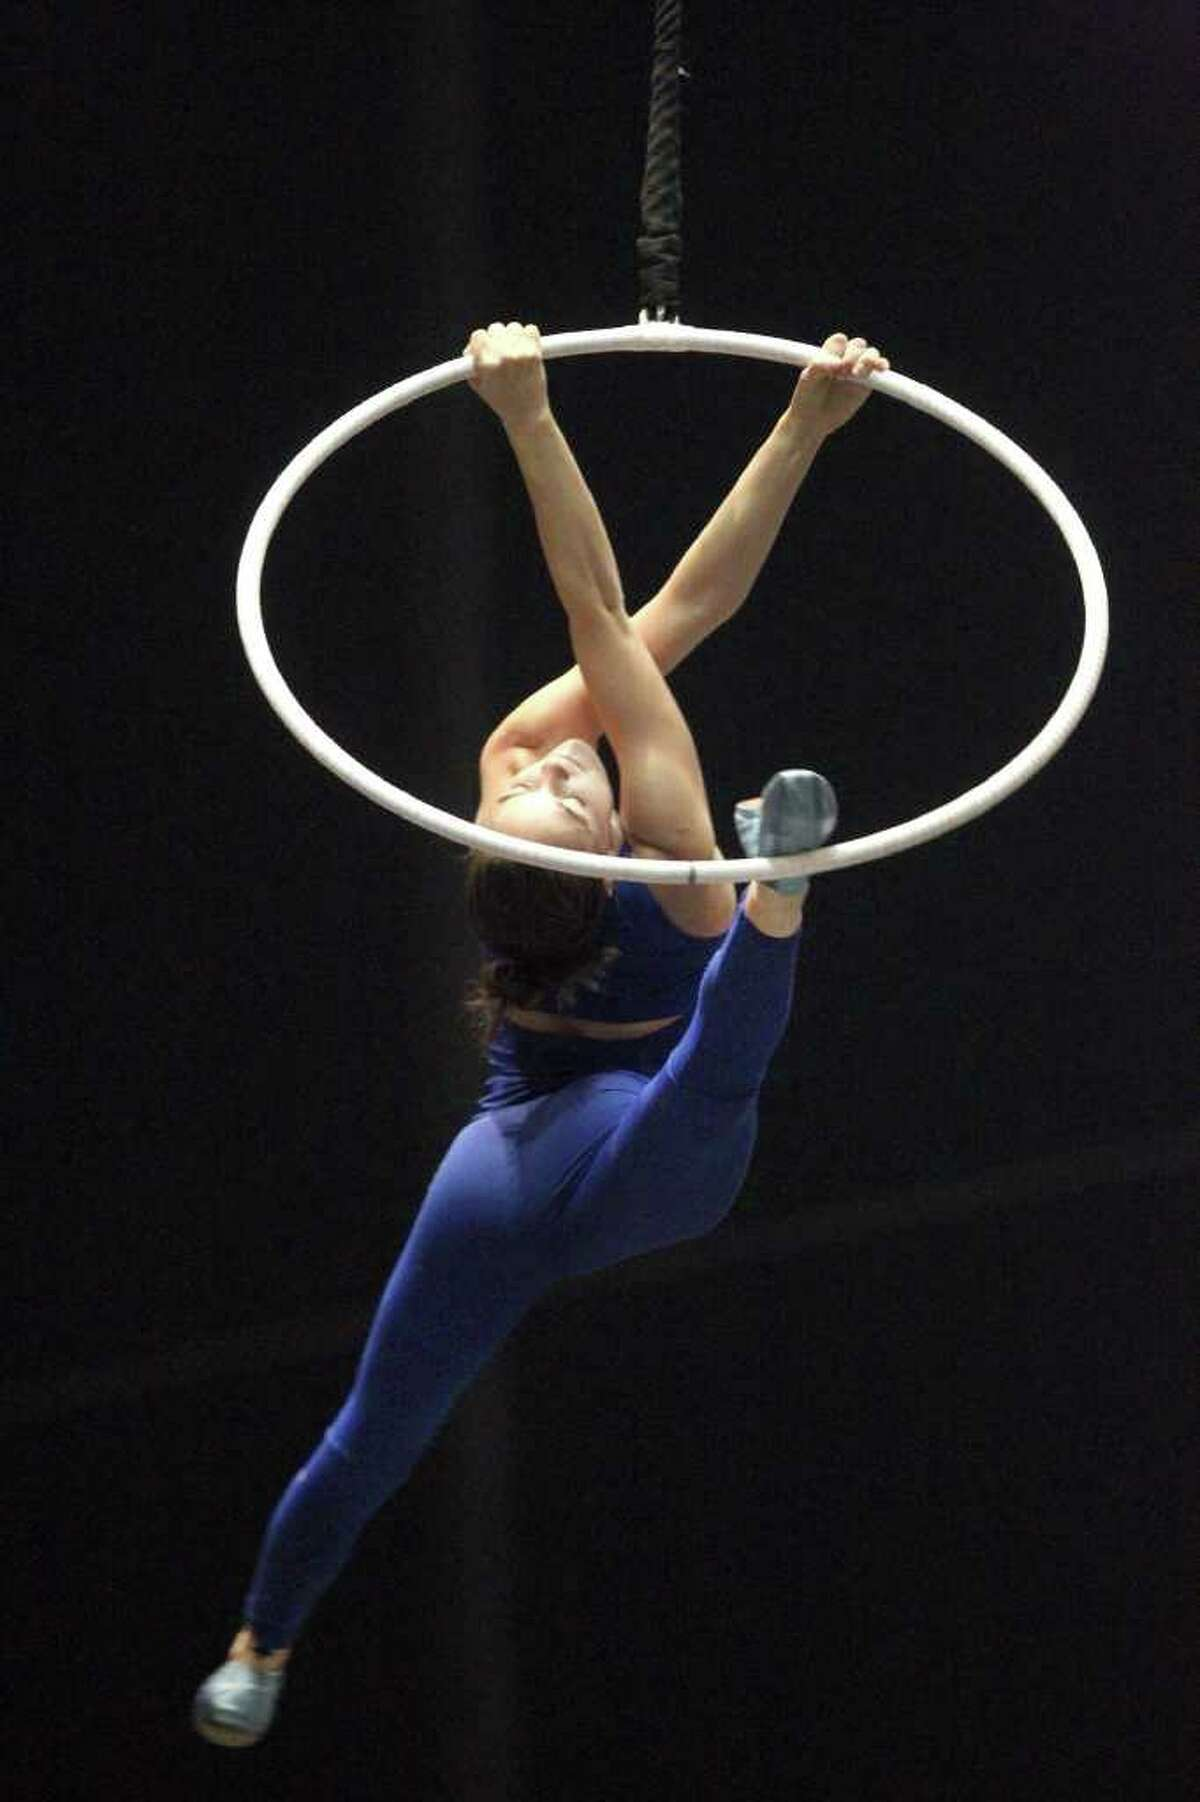 Performer Julie Cameron practices the aerial hoops for Cirque du Soleil's production of